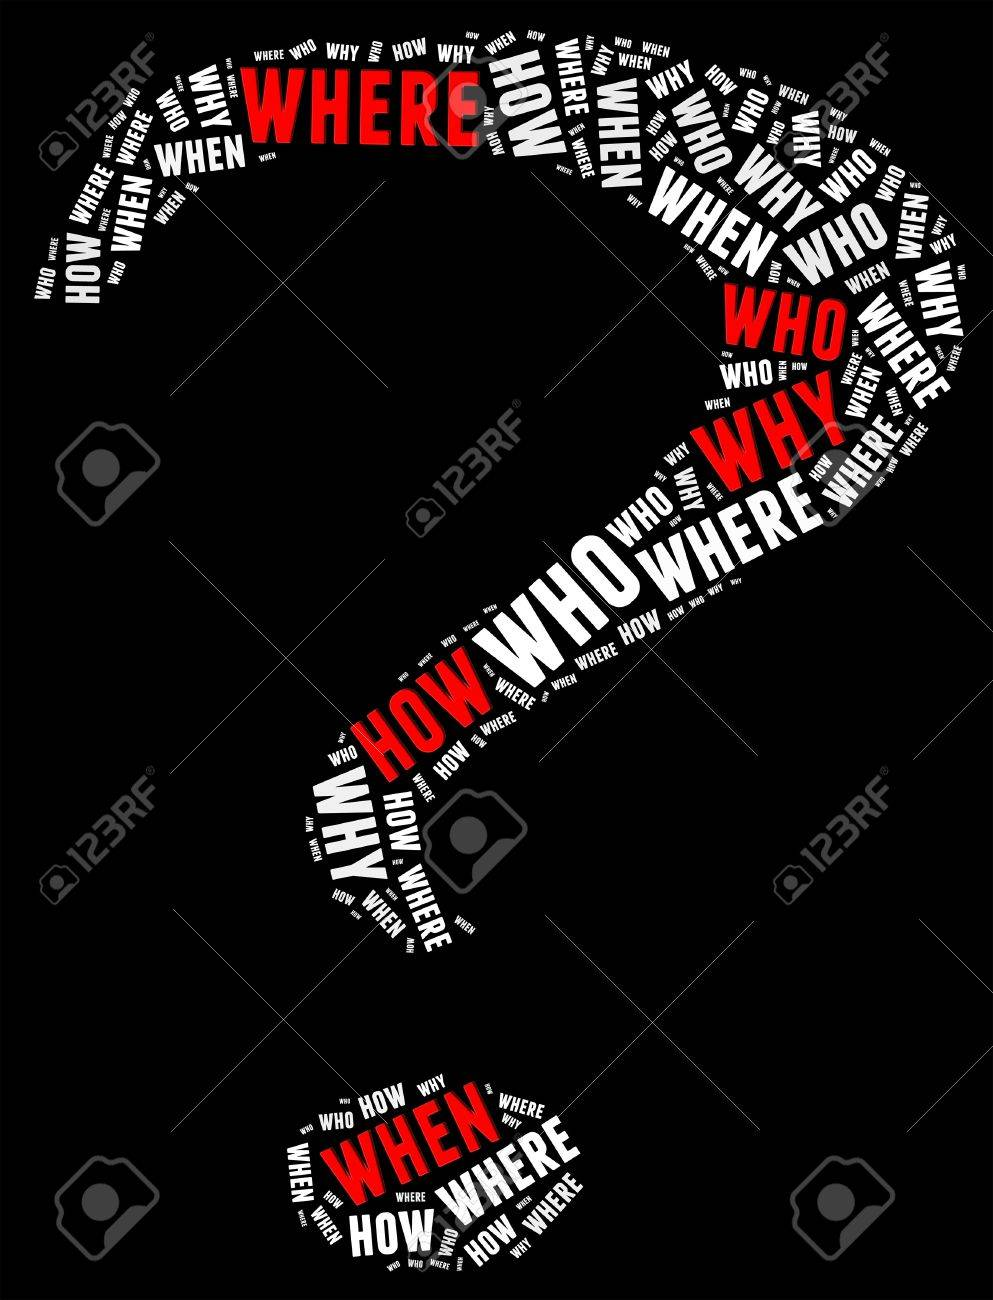 Question info text graphic and arrangement concept with question mark shape Stock Photo - 15874866